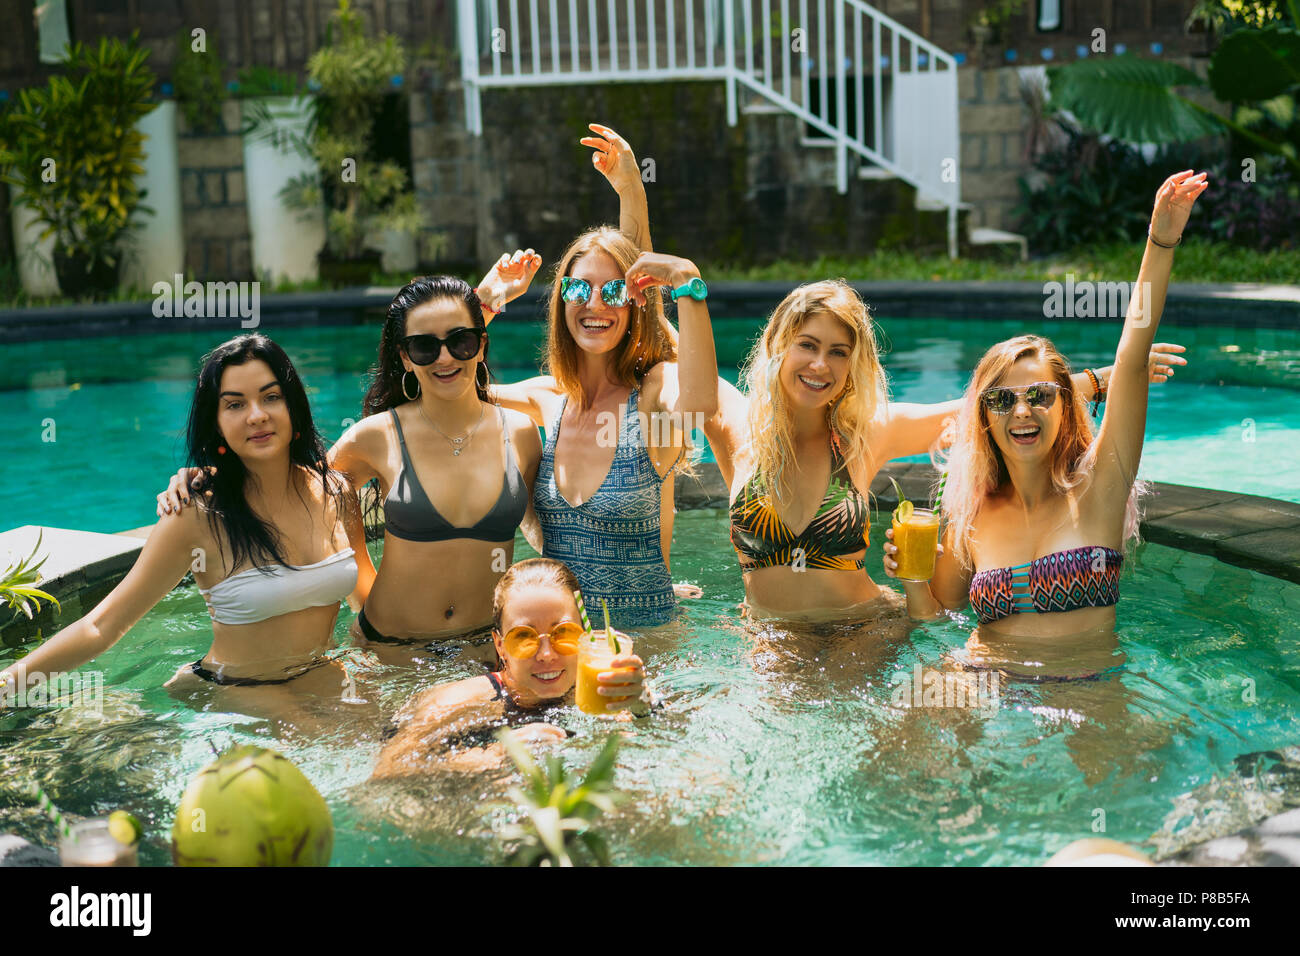 beautiful young women in swimwear and sunglasses smiling at camera while having fun together at swimming pool - Stock Image